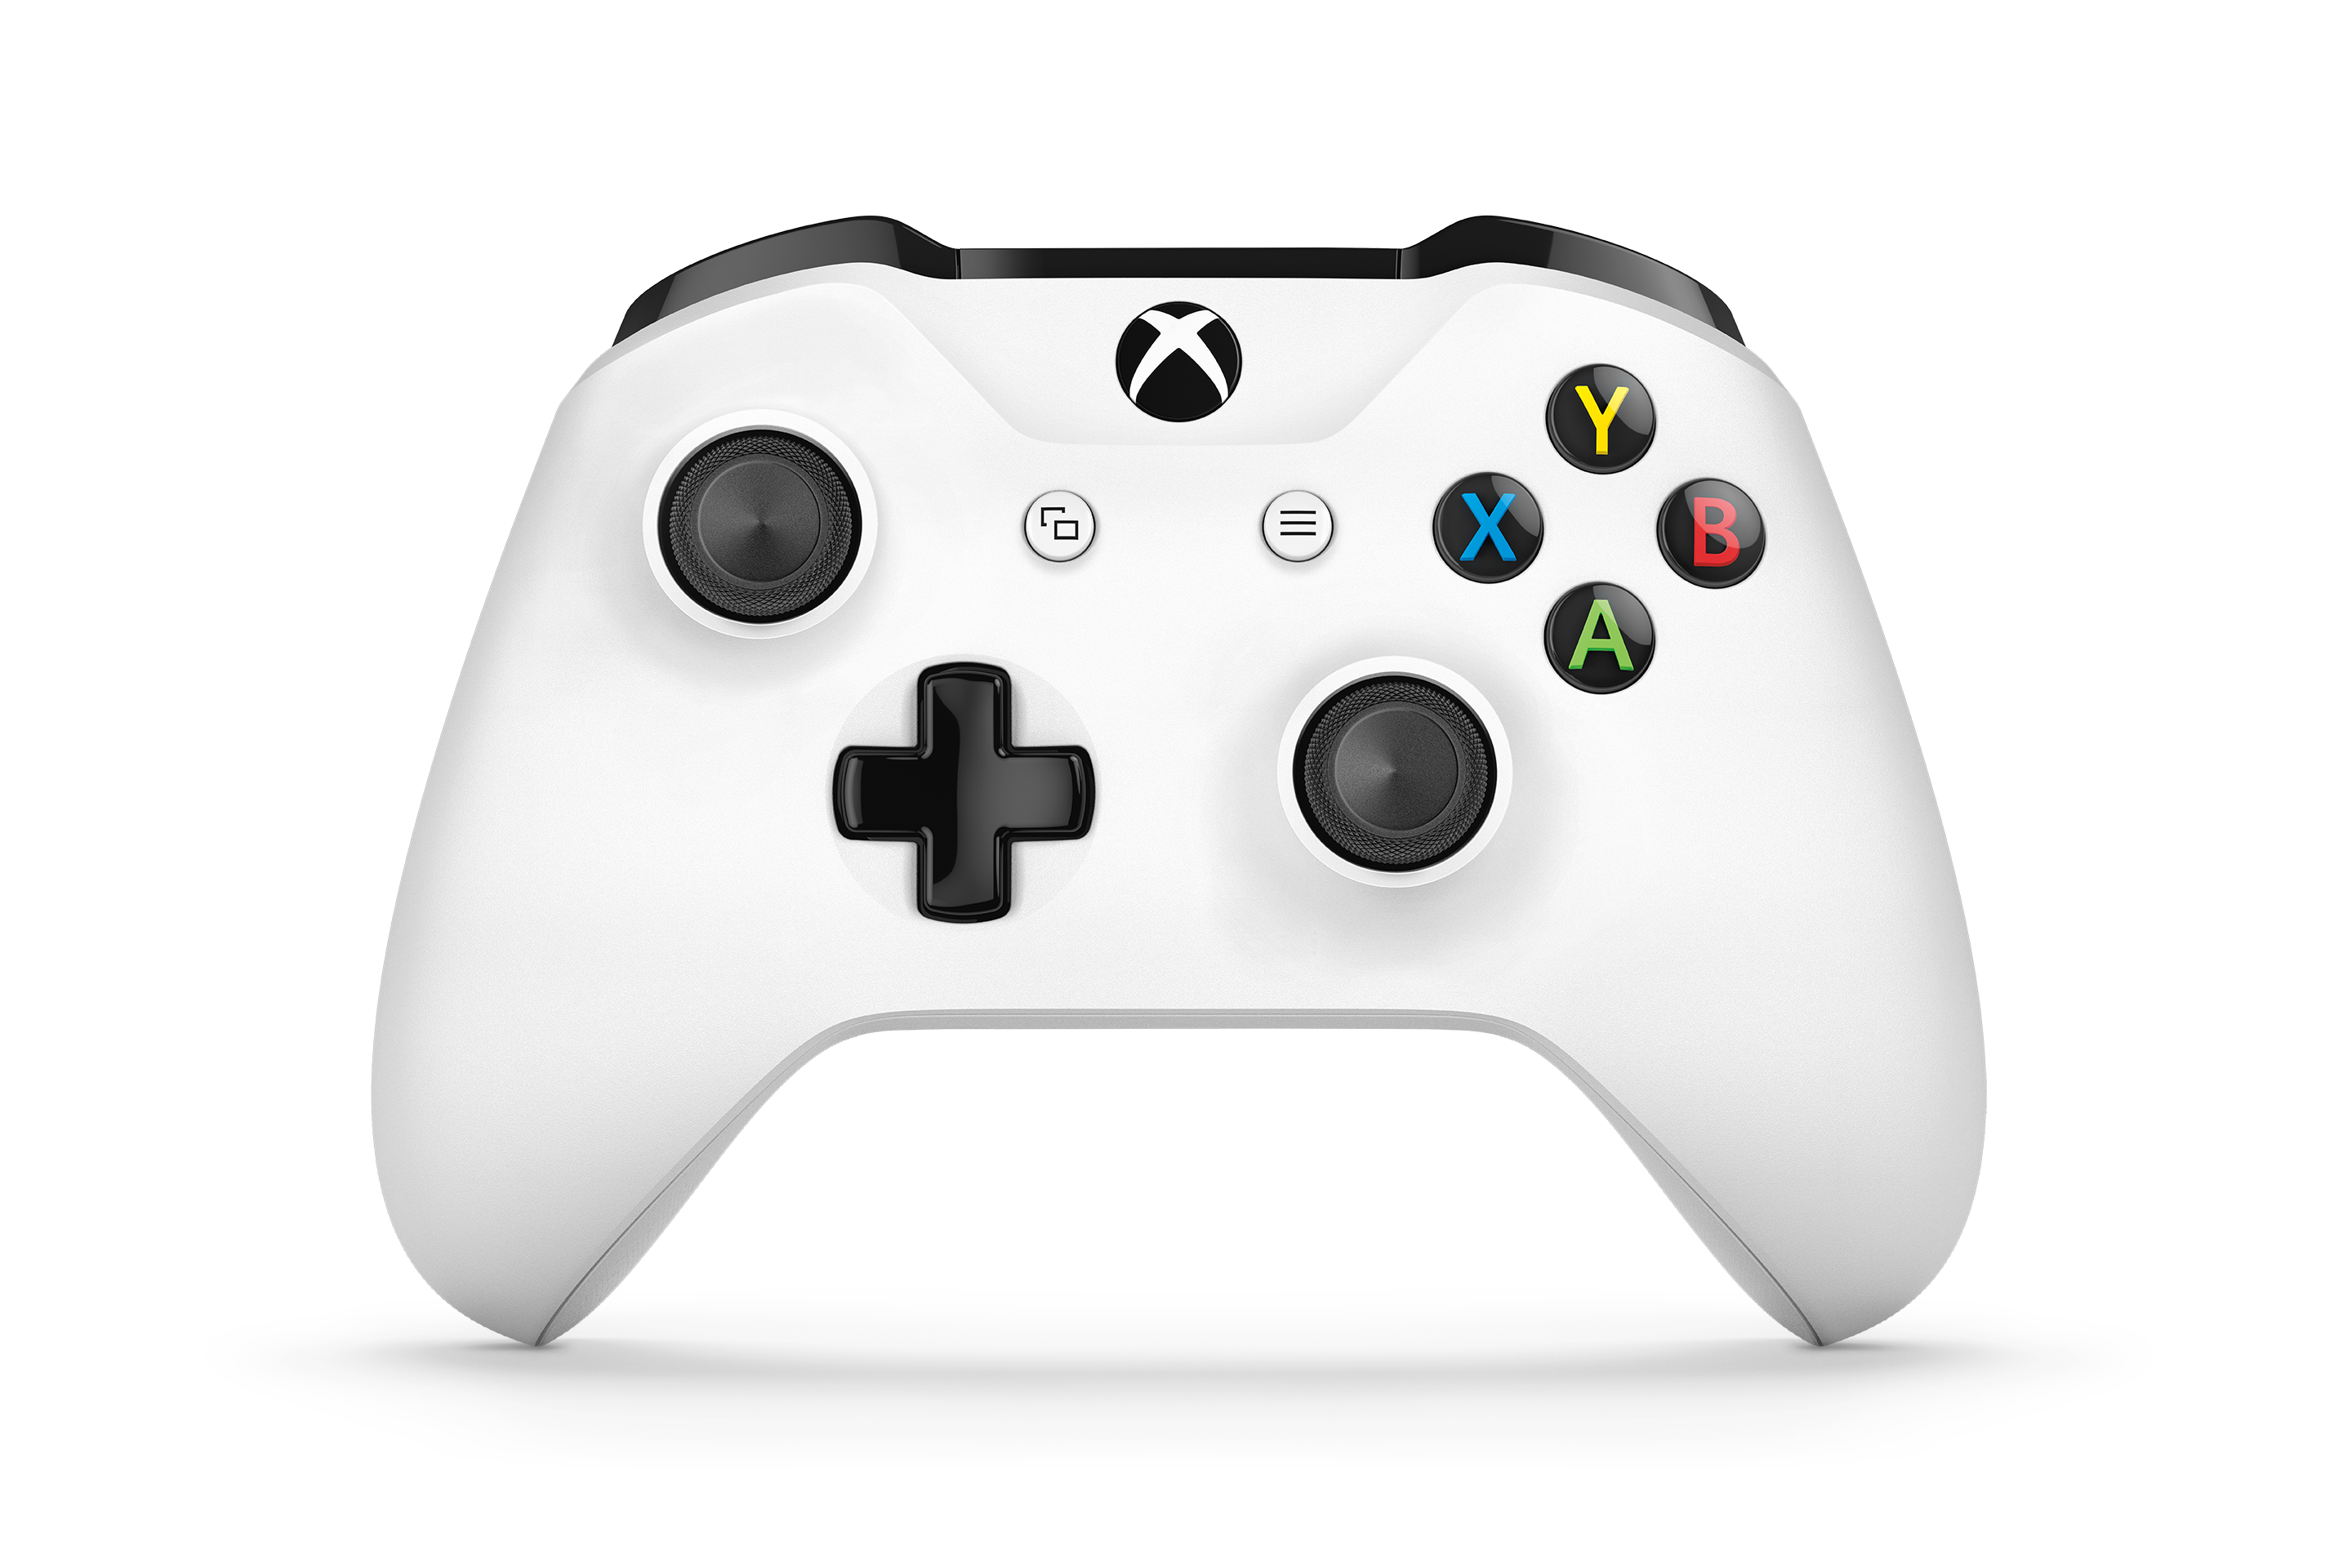 black xbox controller png - photo #15